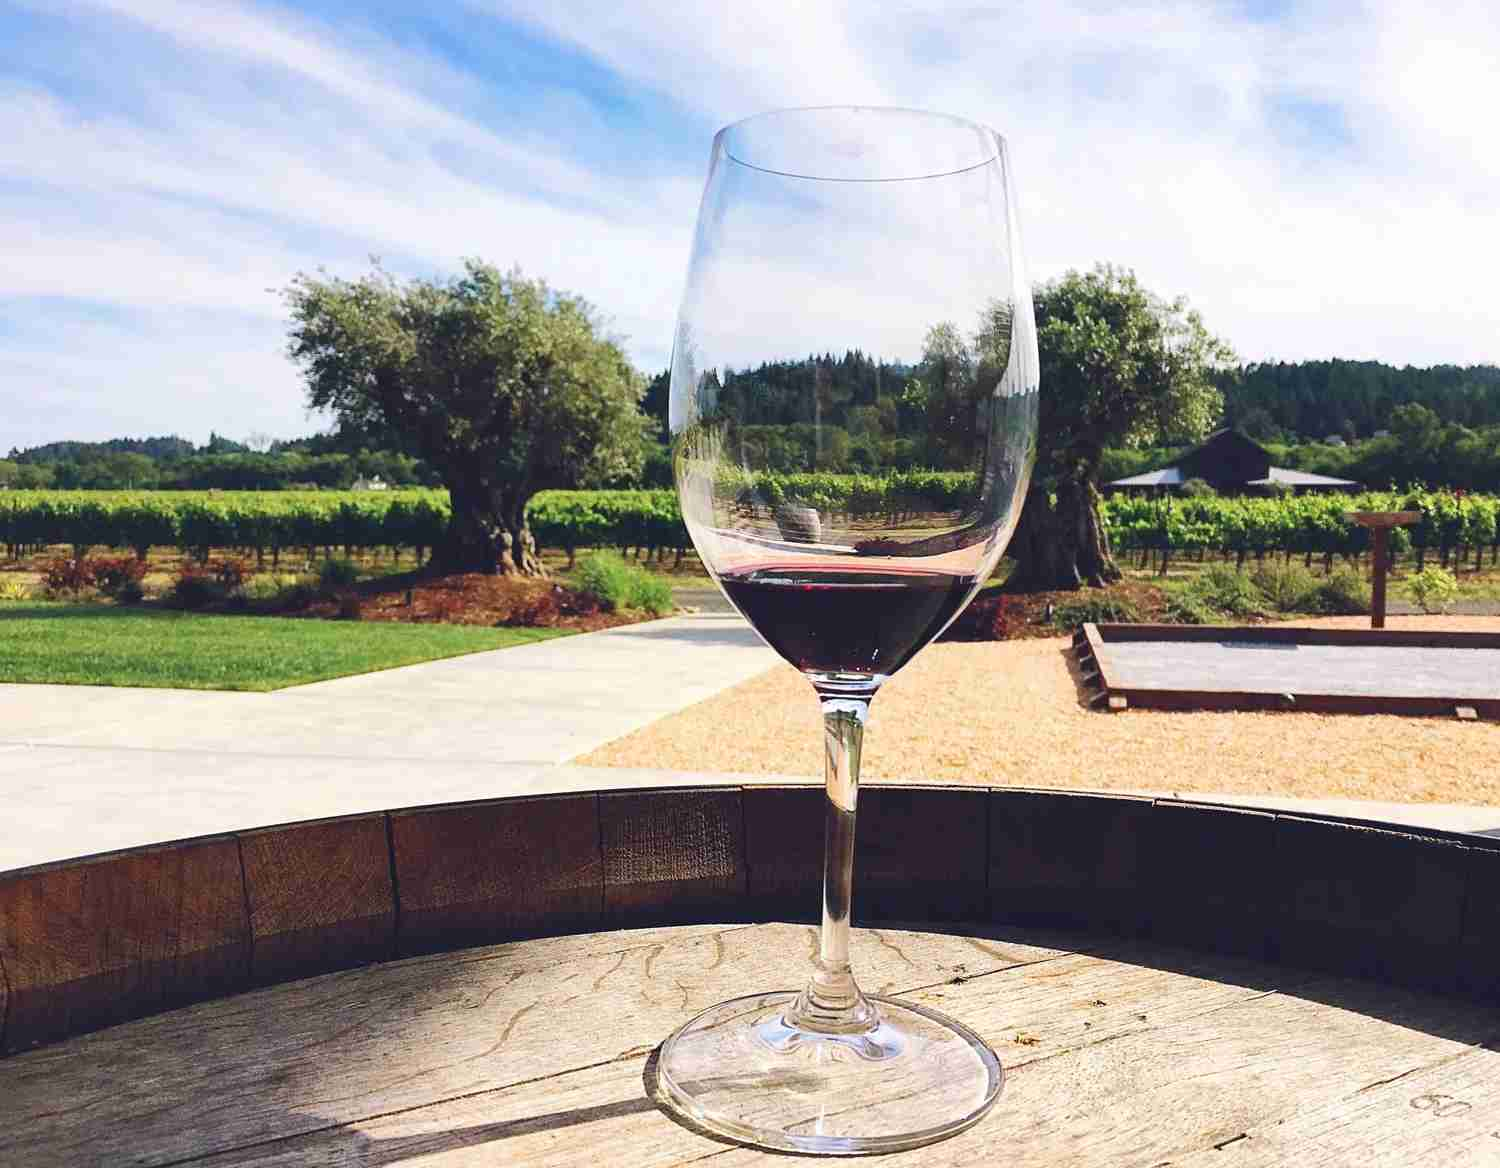 Photo of North California winery by Spencer Spellman.